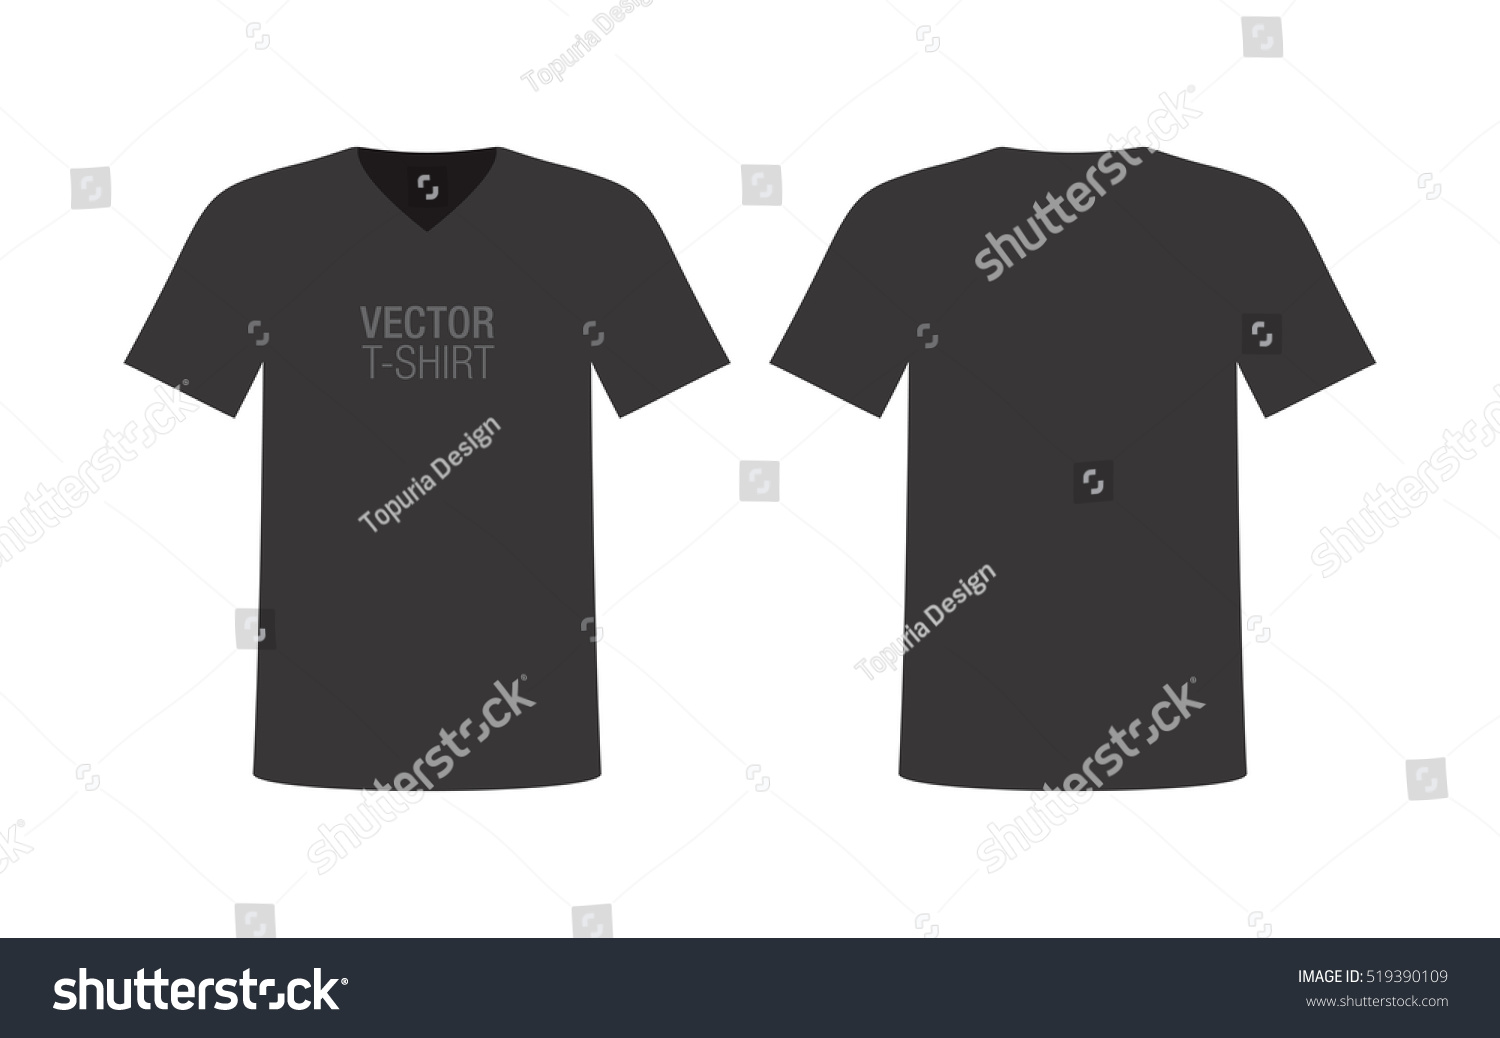 black v neck t shirt template - photo #31